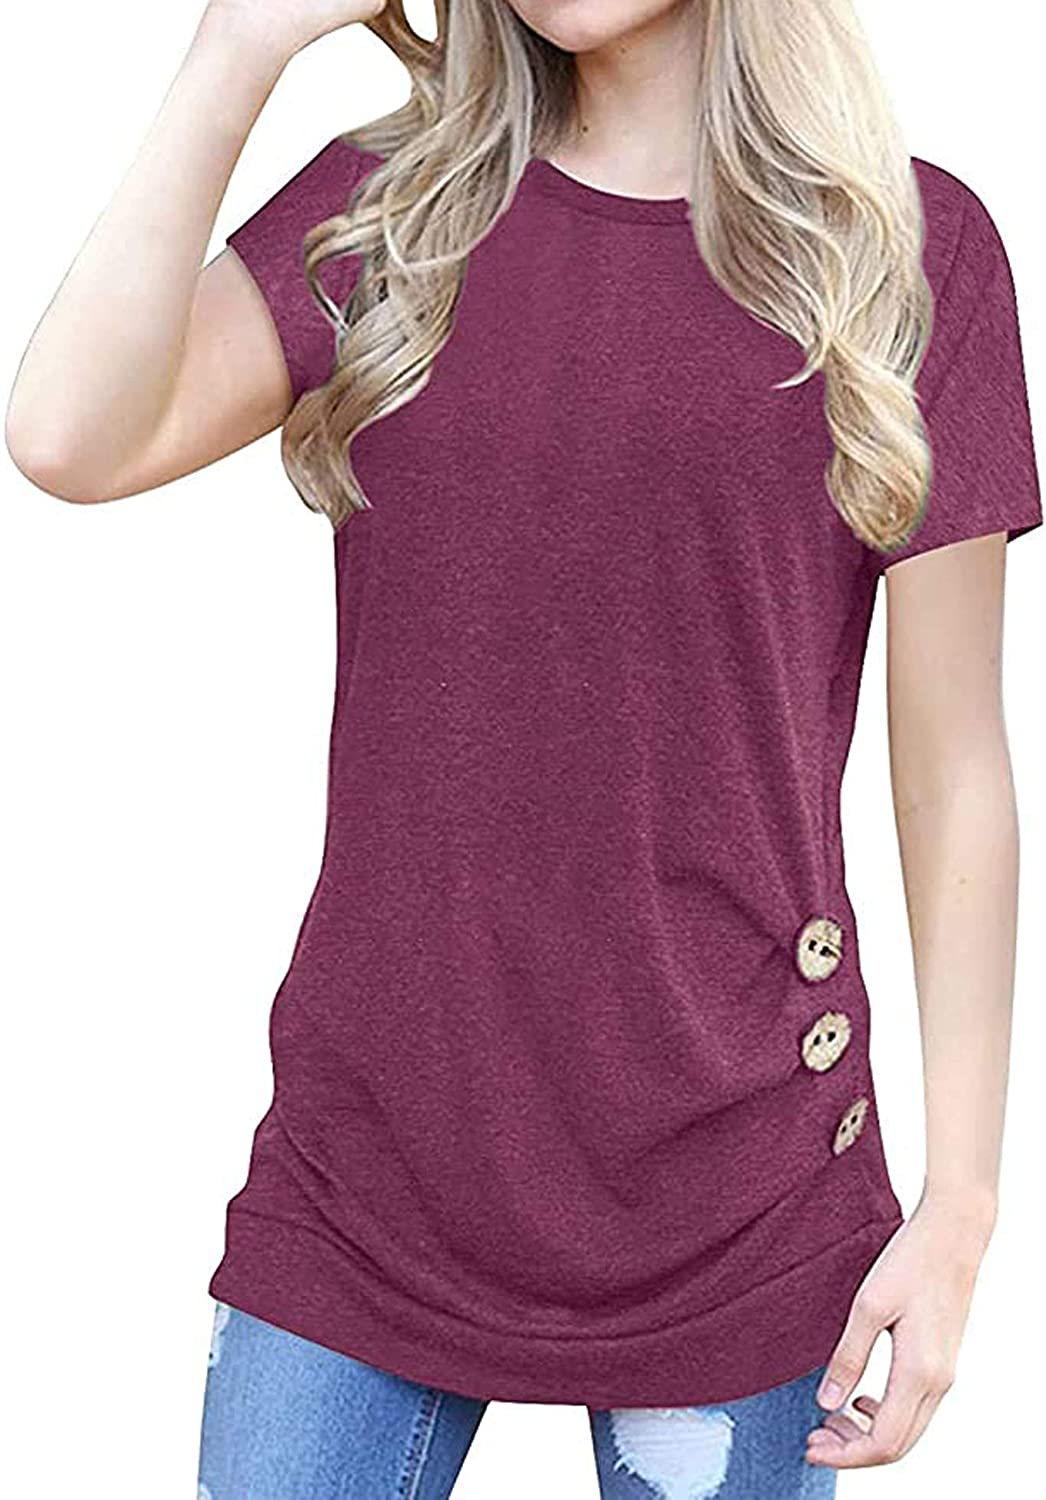 YEAQING Women Short Sleeve Solid Tunic Casual Loose Cotton T-Shirts Tee Top Blouse